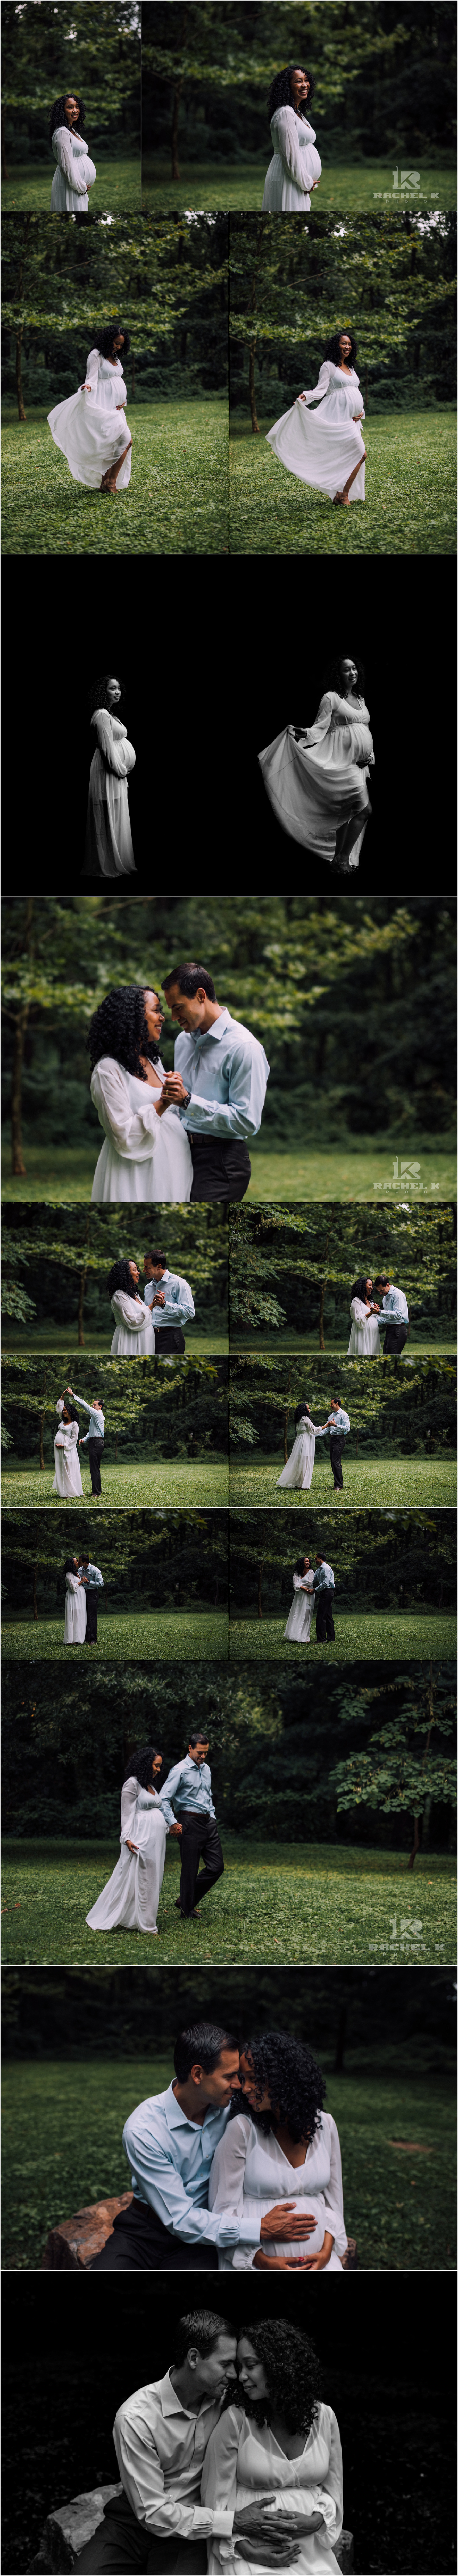 Northern Virginia summer maternity session with white dress by Rachel K Photo